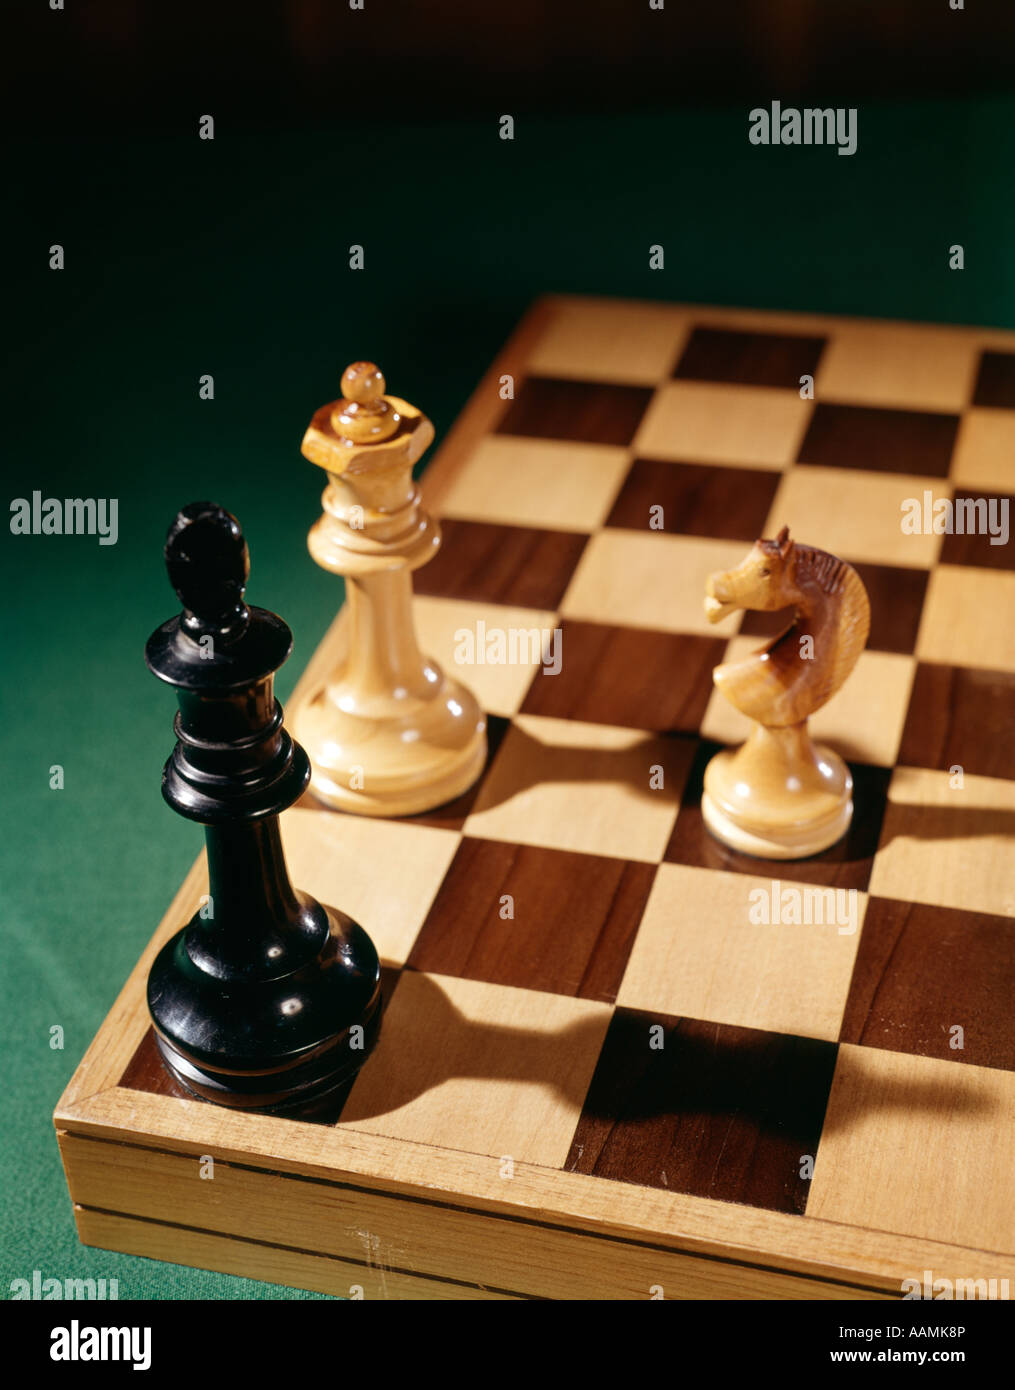 3 CHESS PIECES ON CHESSBOARD CHECKMATE GAME STRATEGY GAMES WIN RETRO - Stock Image